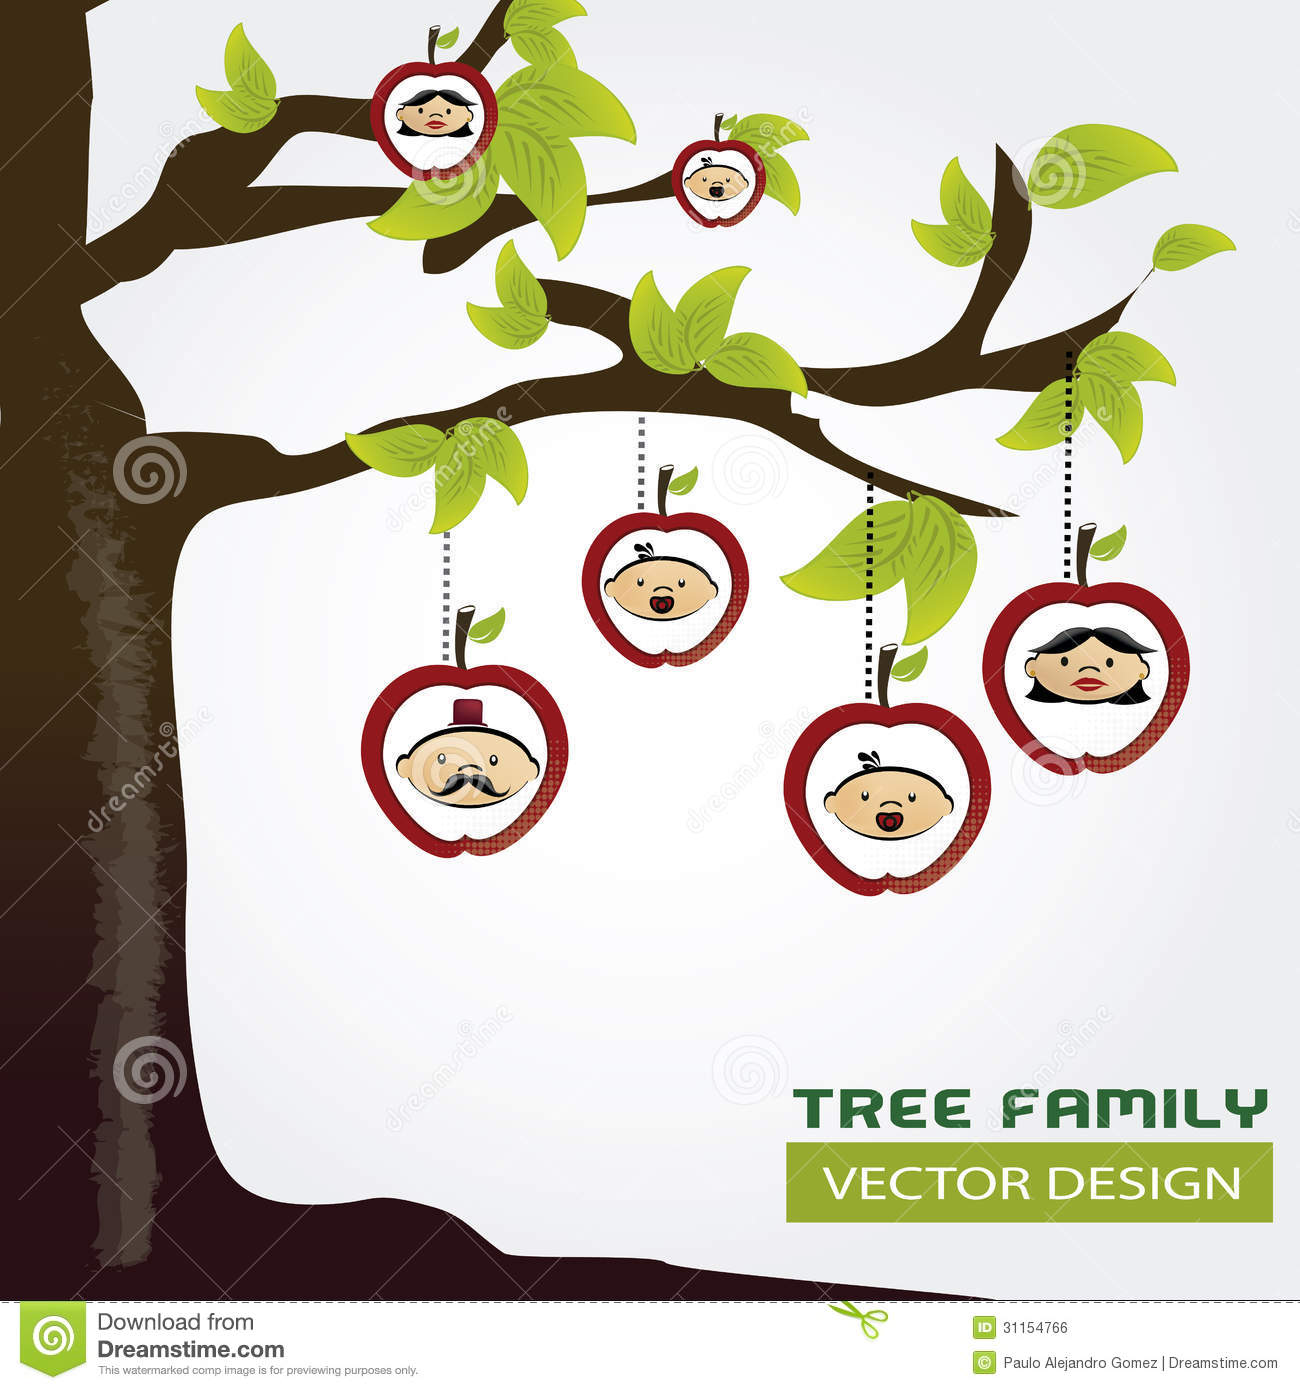 Family Tree Royalty Free Stock Image - Image: 31154766